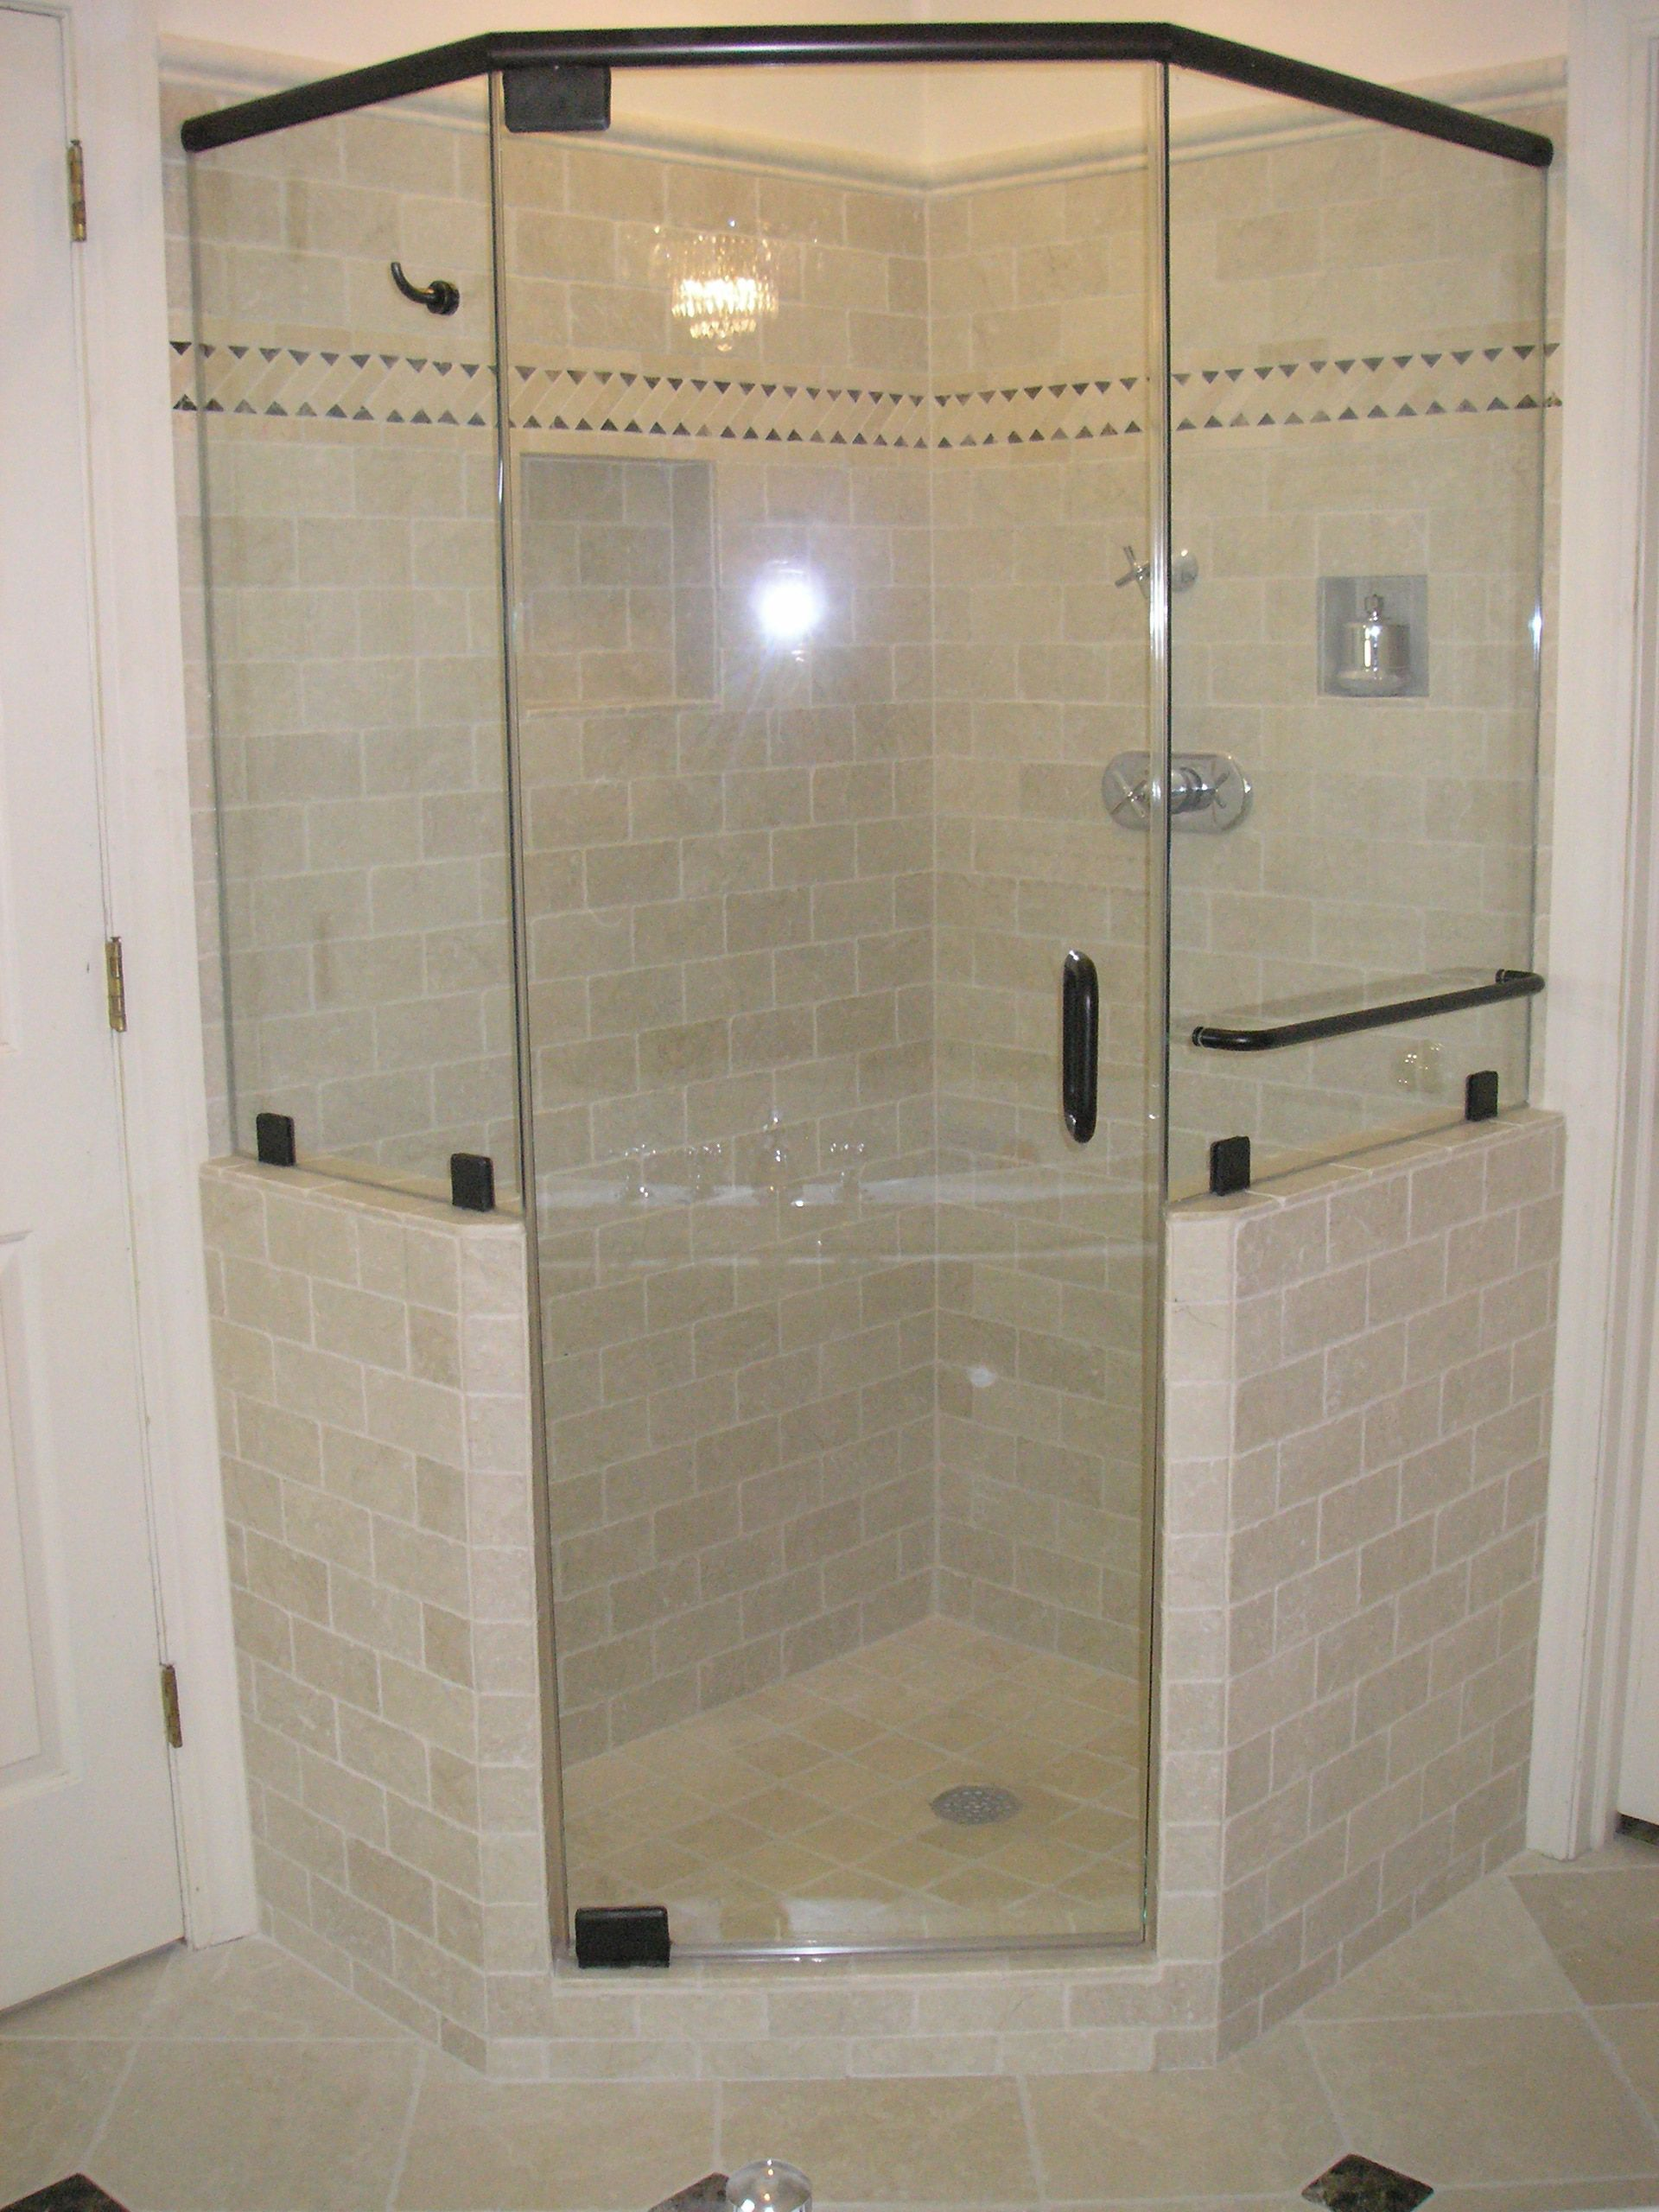 Frameless quadrant shower enclosure have more elegant look than fully framed doors and they can be easily fit into bathroom of any style